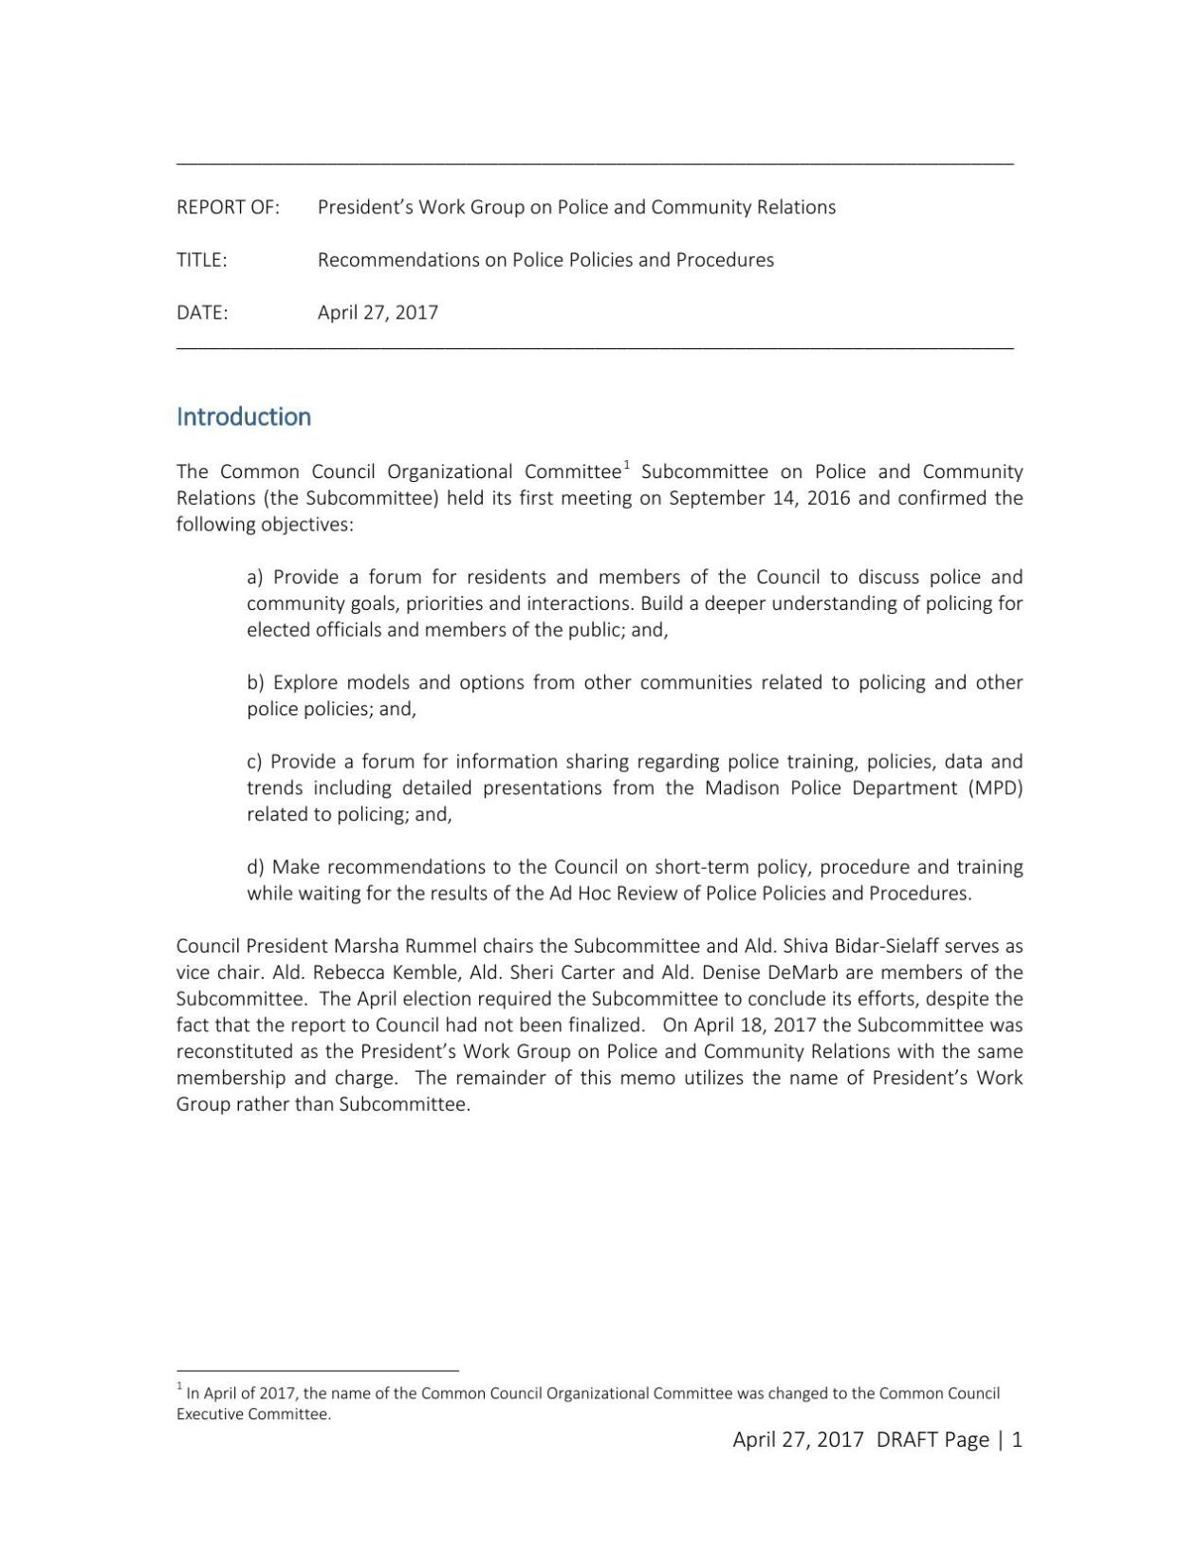 Police Community Relations draft report